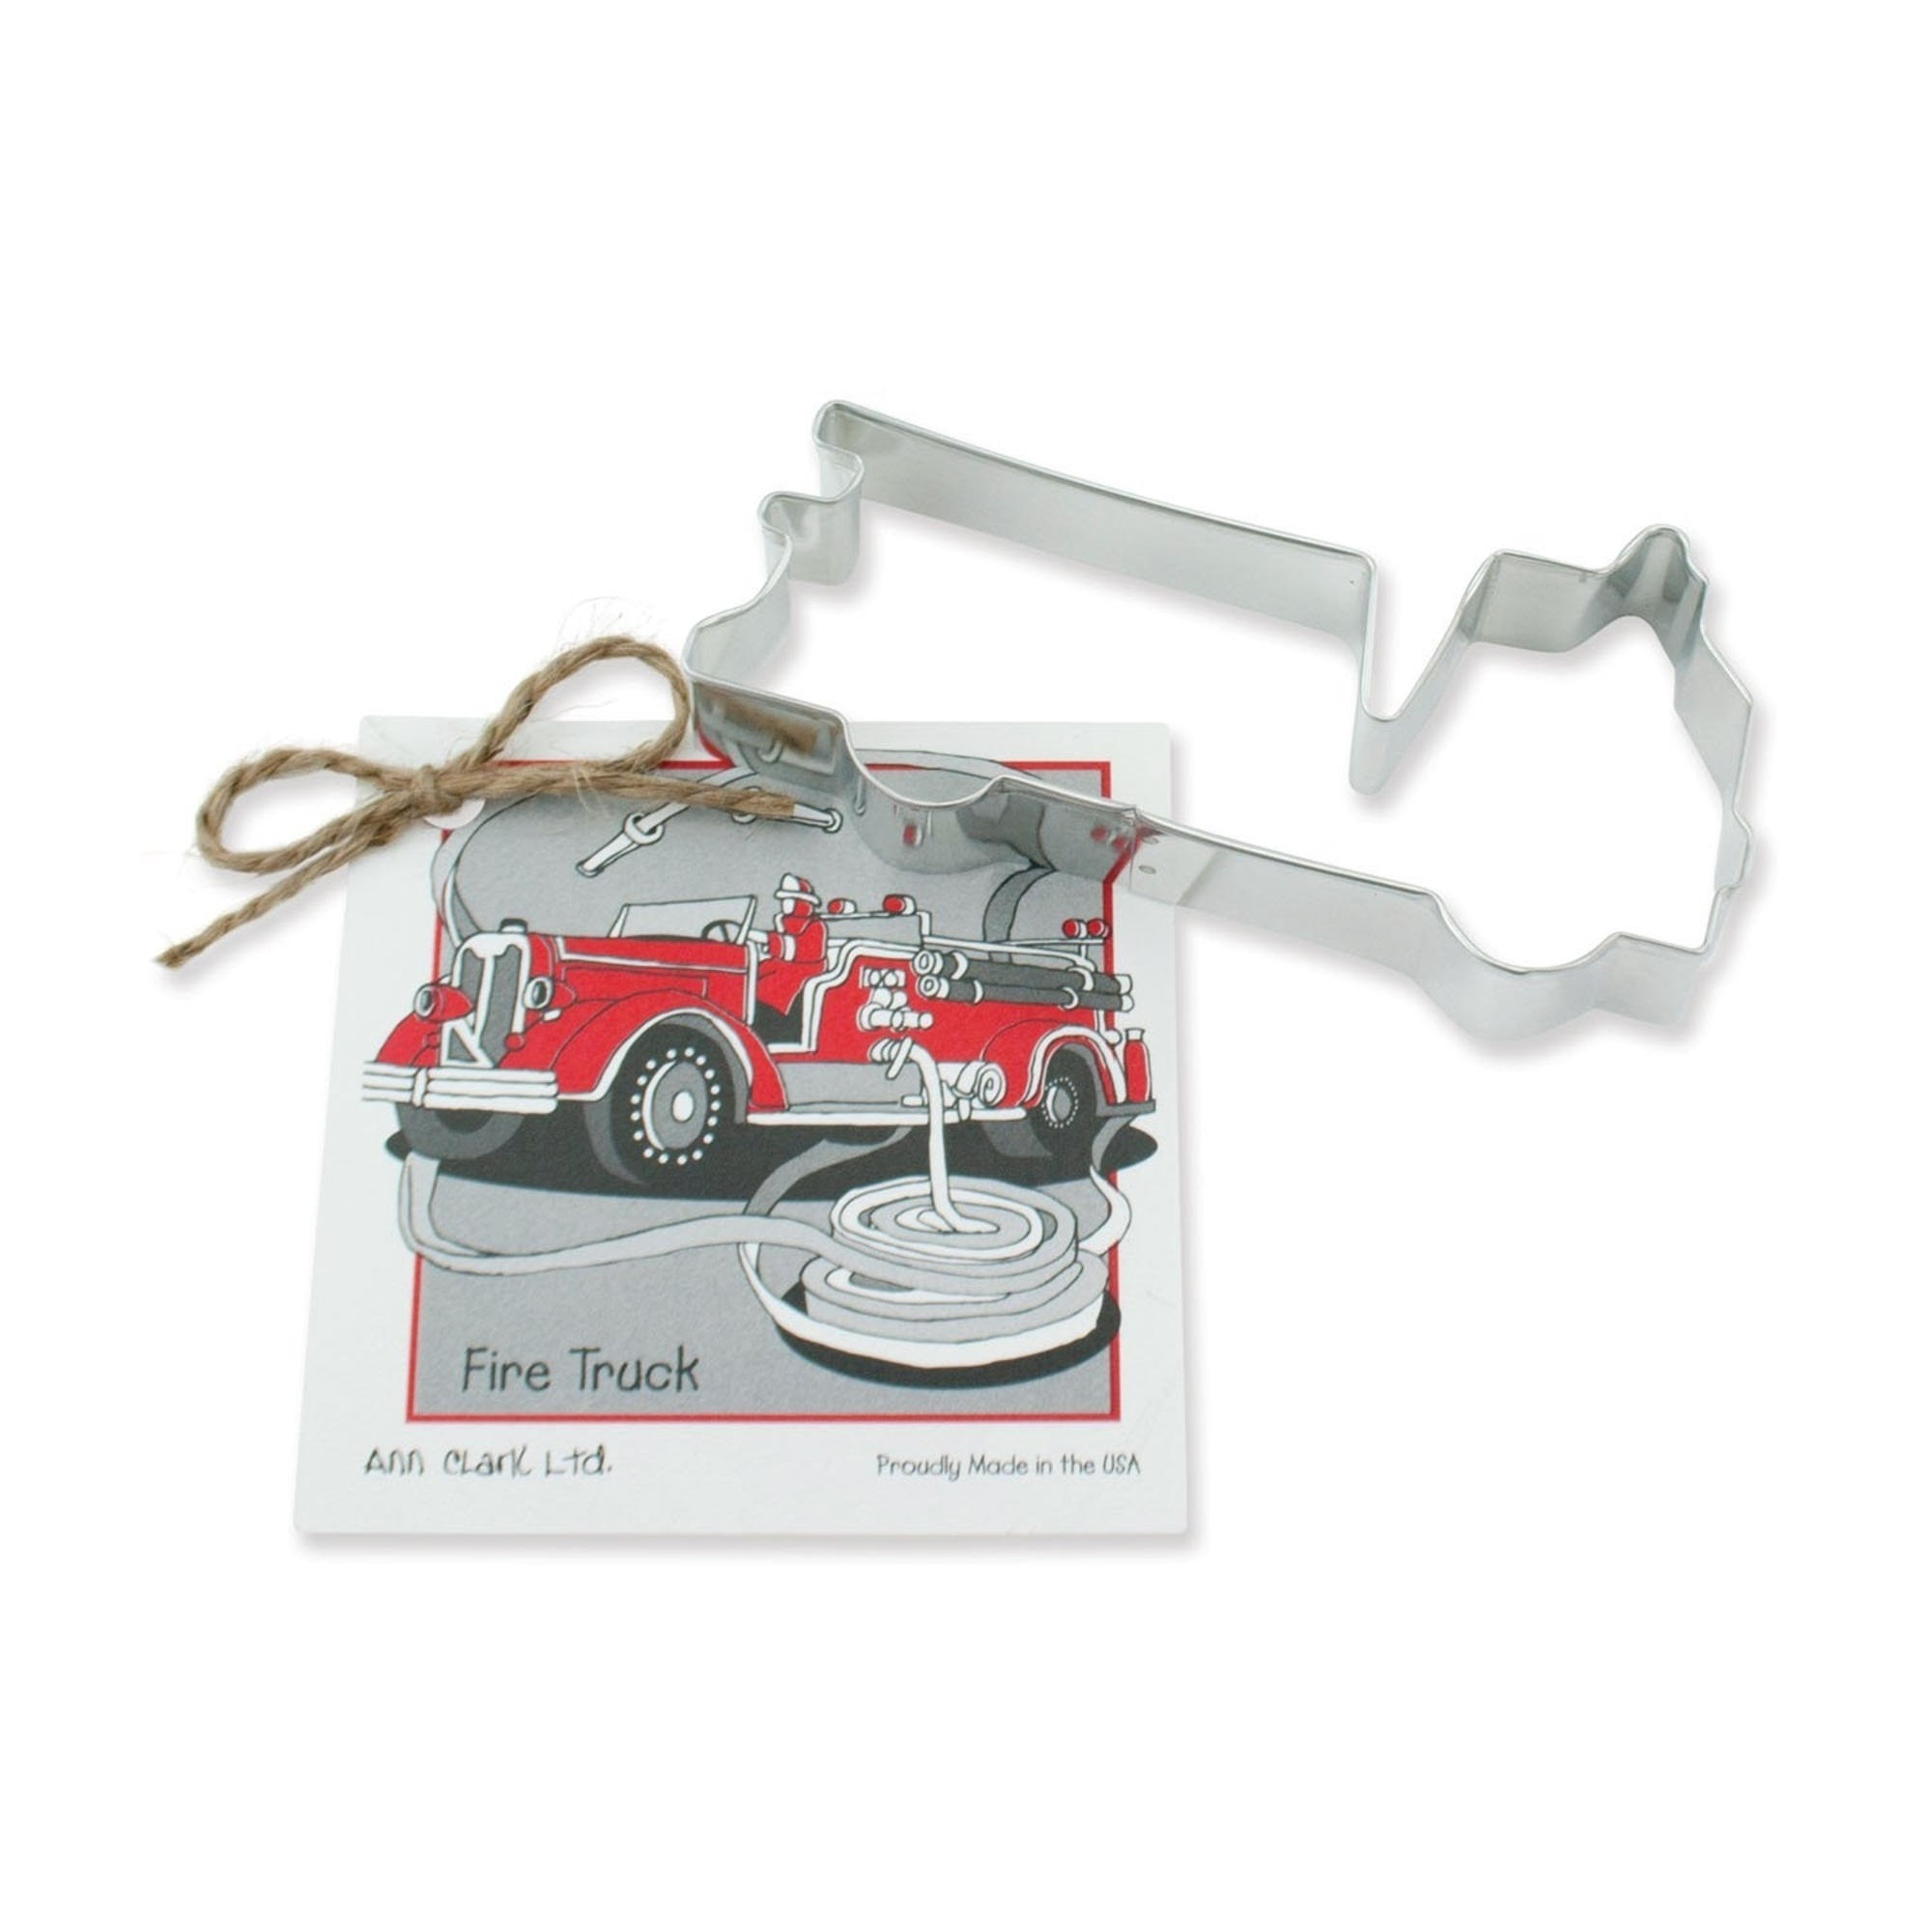 "Ann Clark 5"" Cookie Cutter Fire Truck by Ann Clark Ltd."